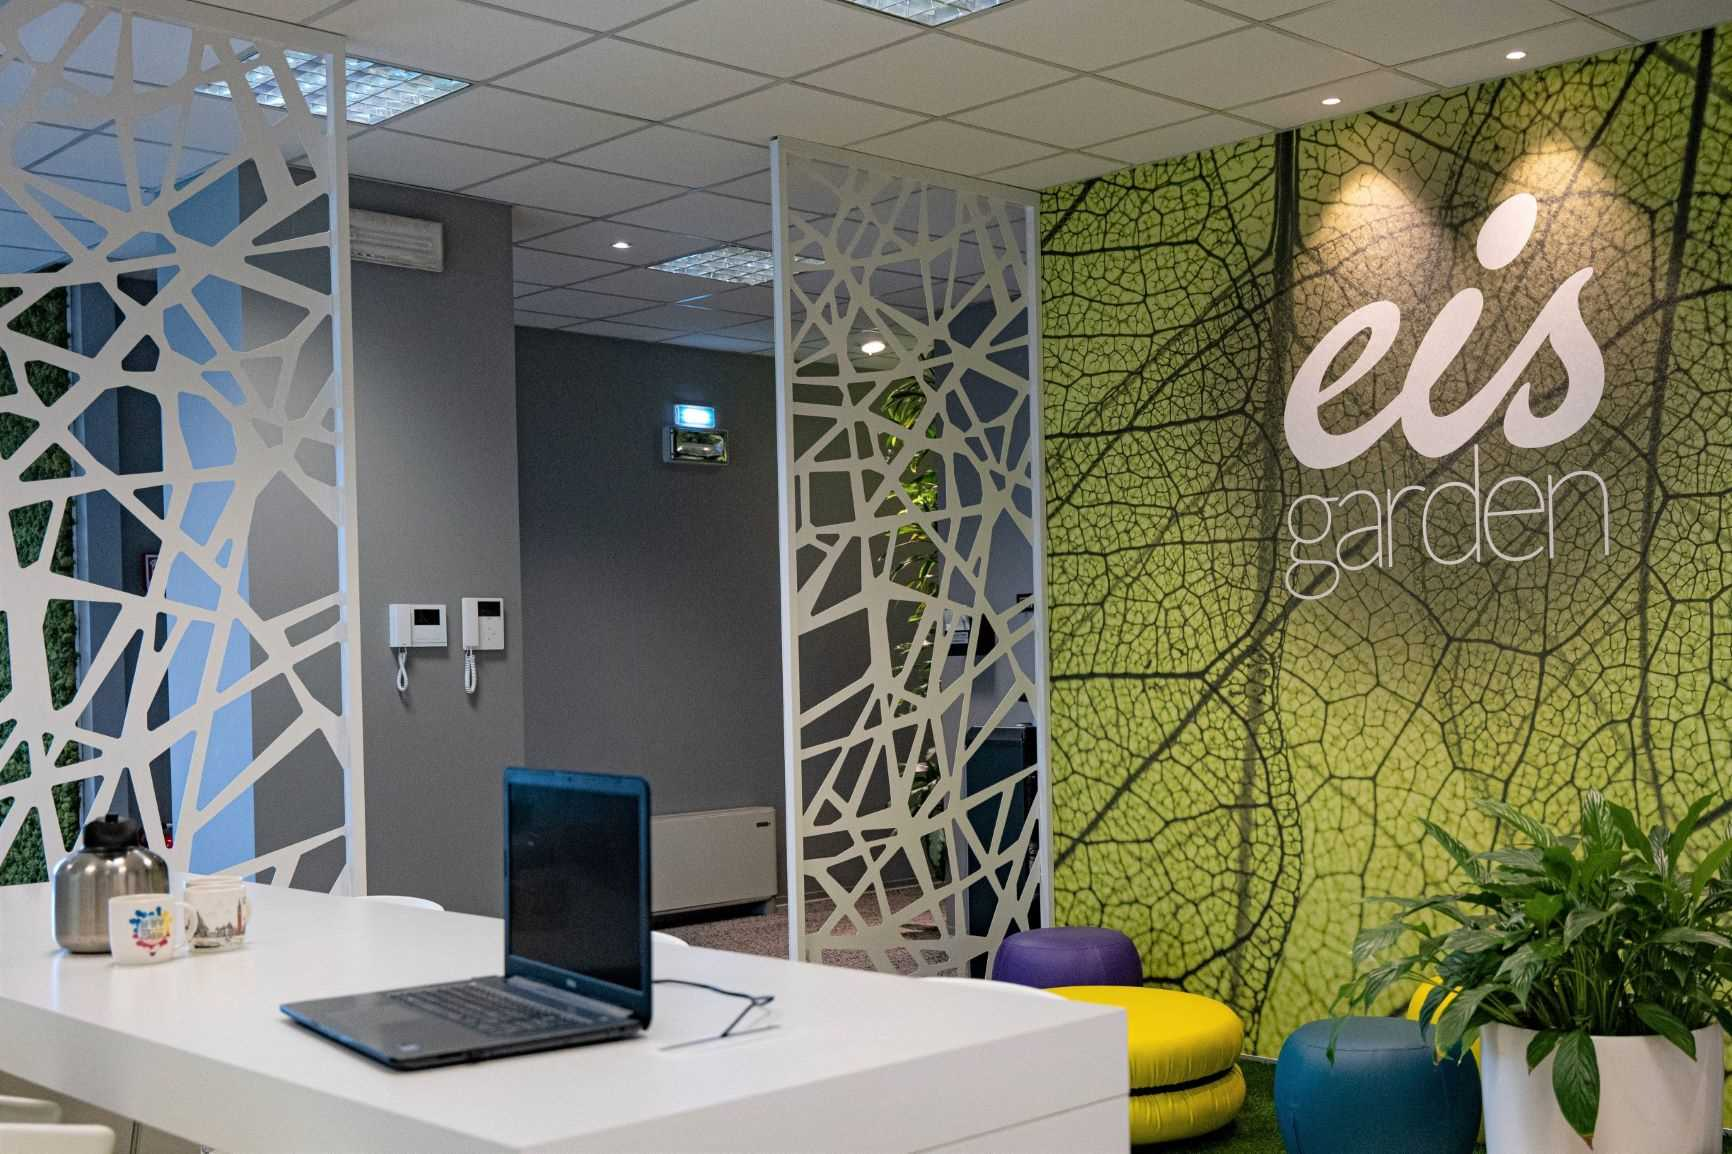 City coworkingarden - Coworking 7 by eis